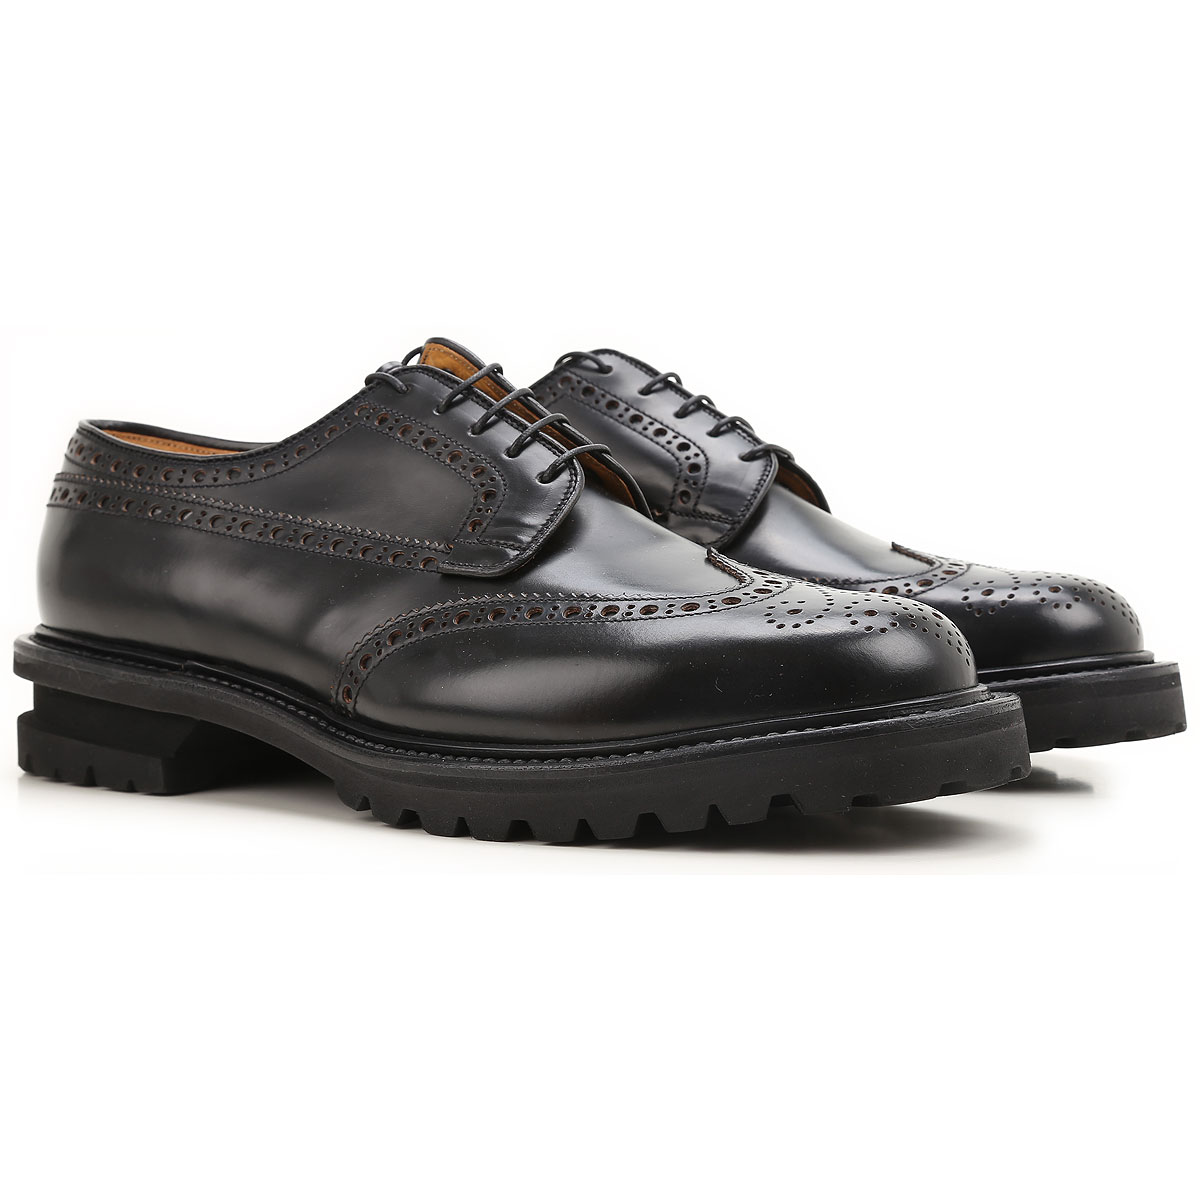 Image of Premiata Brogue Shoes On Sale in Outlet, Black, Leather, 2017, 10 11 7 8 8.5 9 9.5